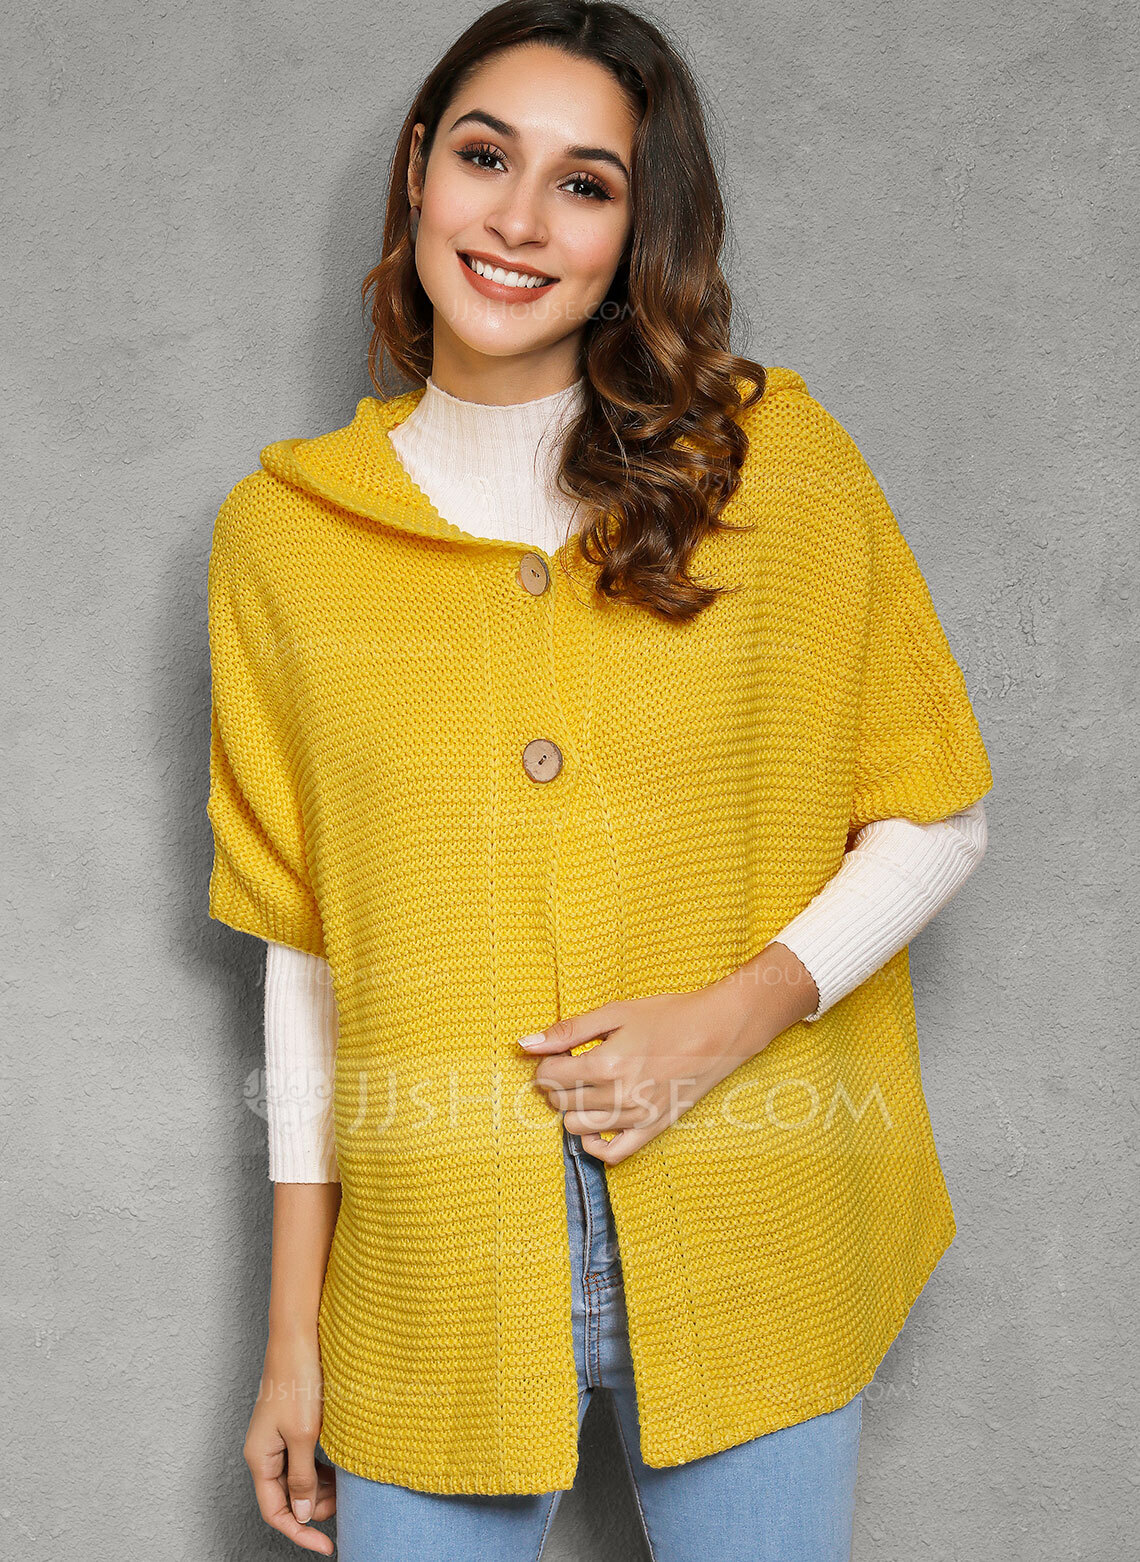 Ribbed Solid Acrylic Polyester Hooded Pullovers Sweaters